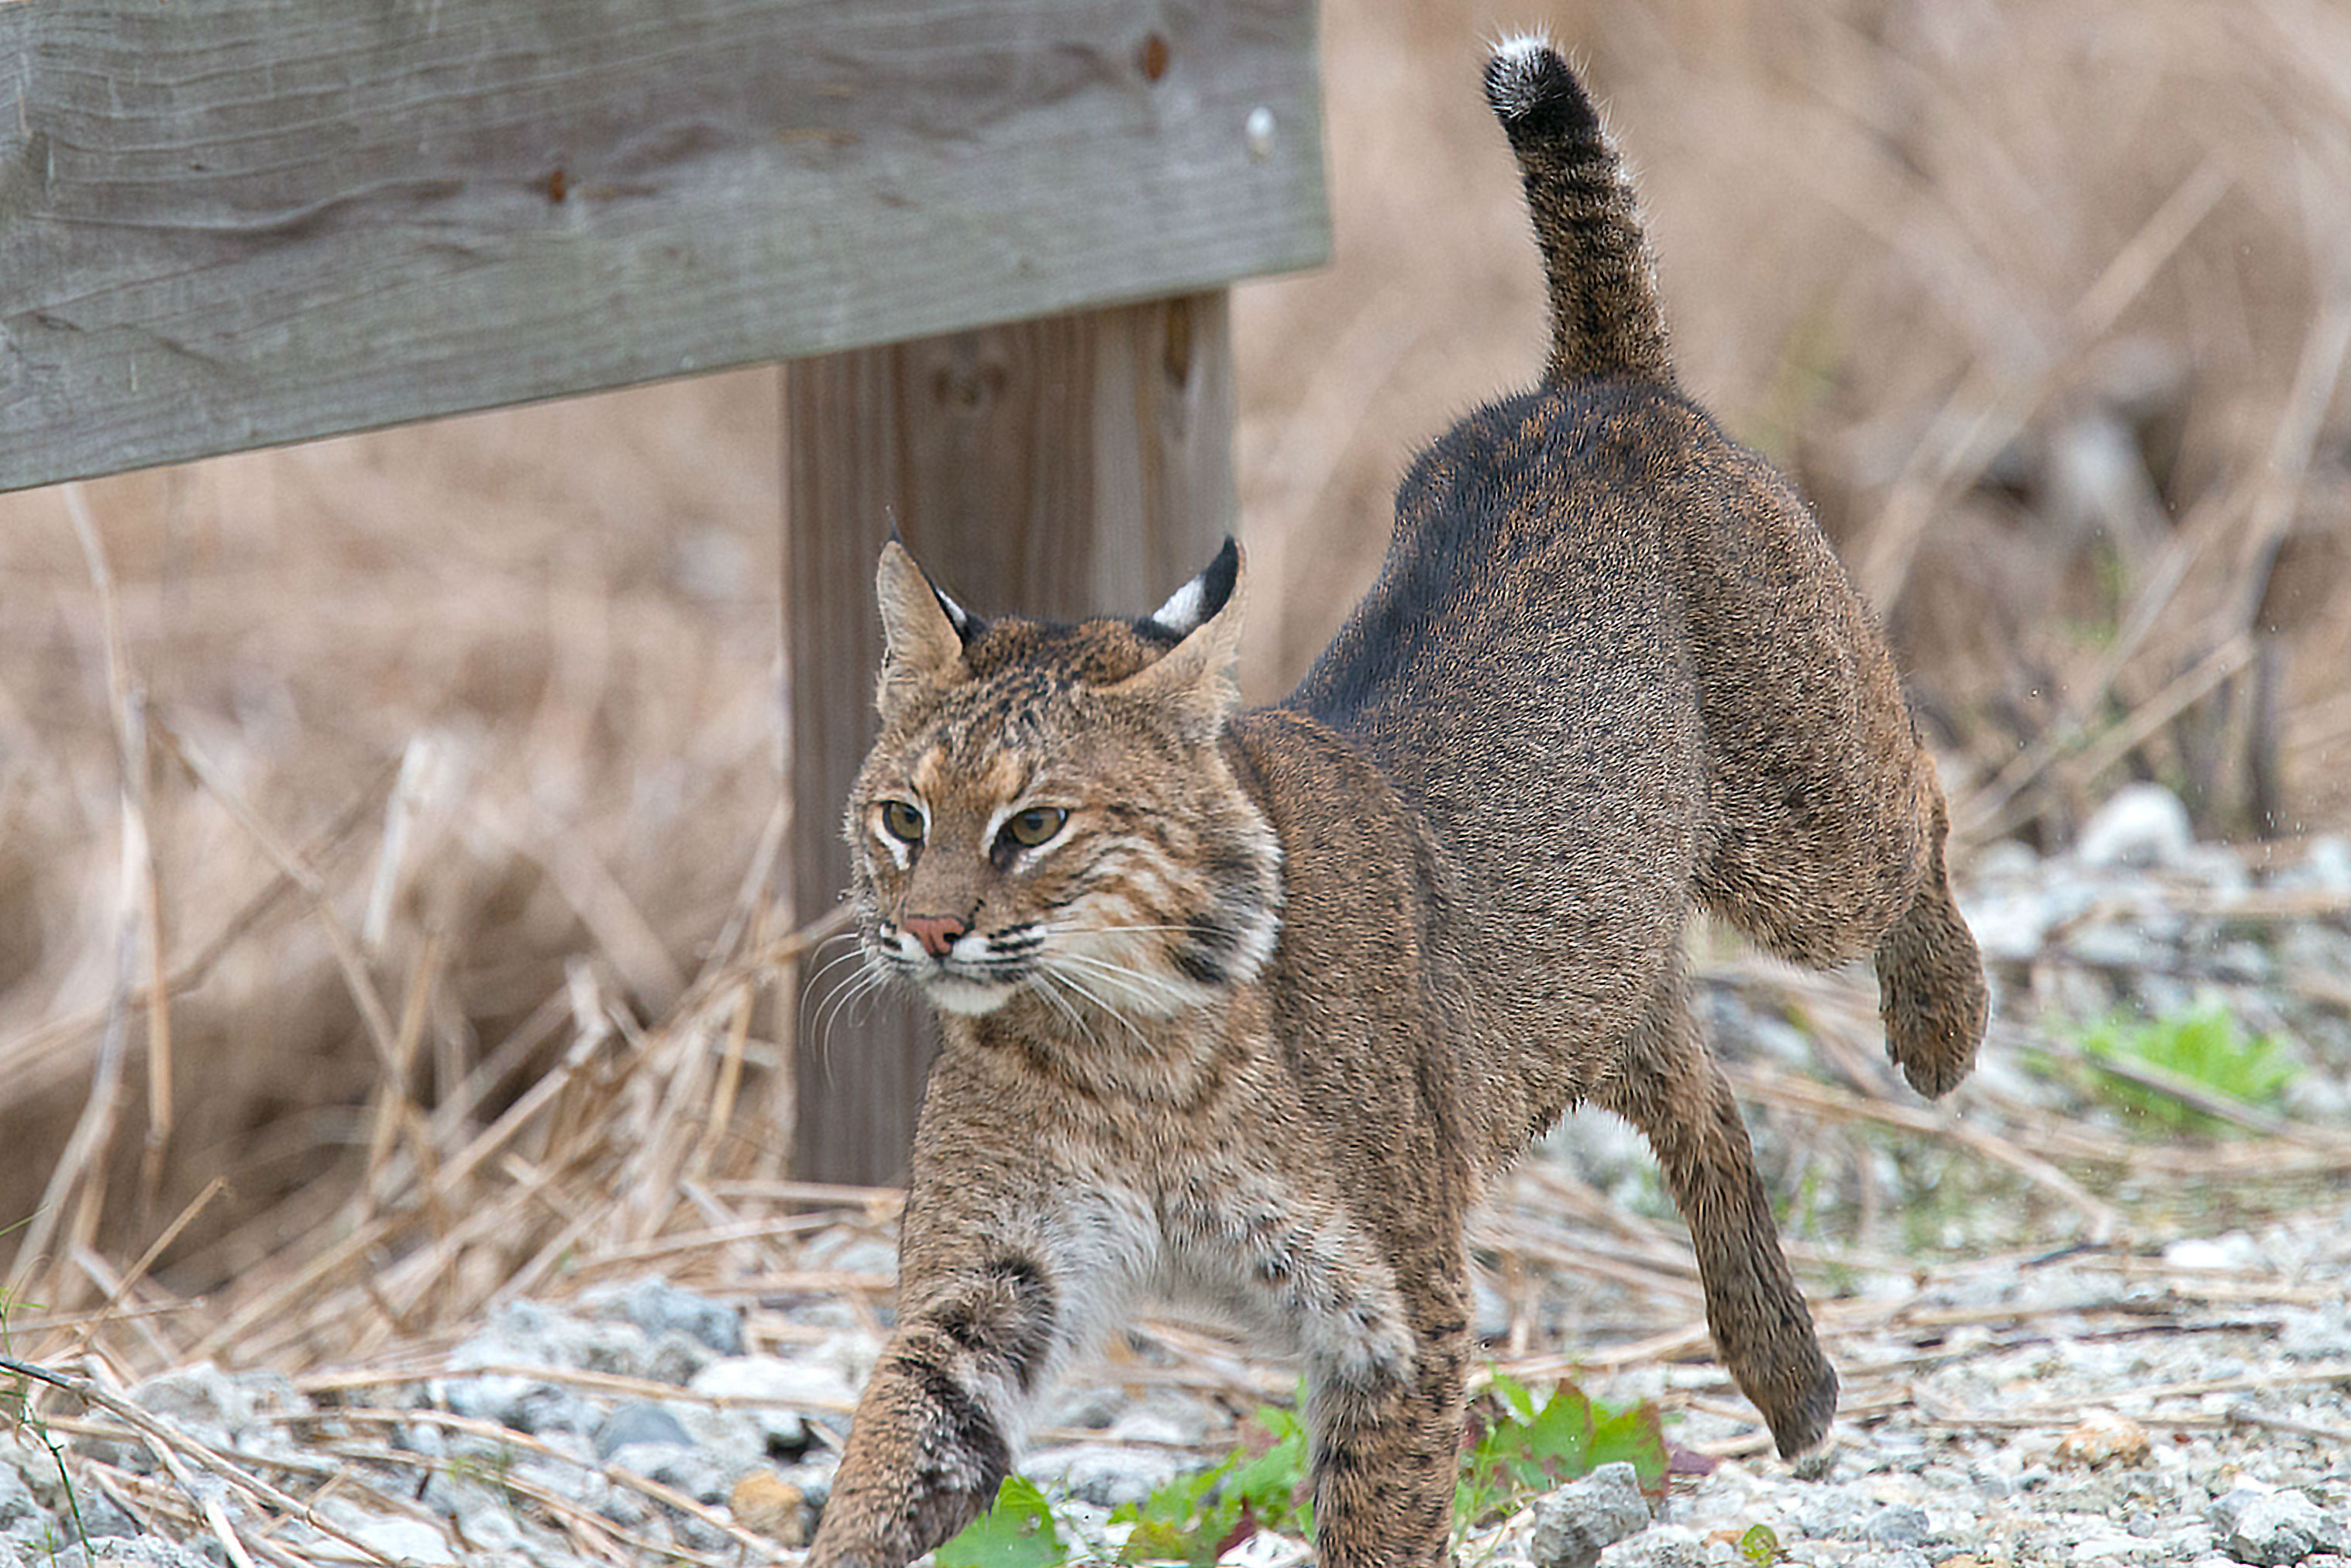 proposed bobcat hunting season still early in planning process